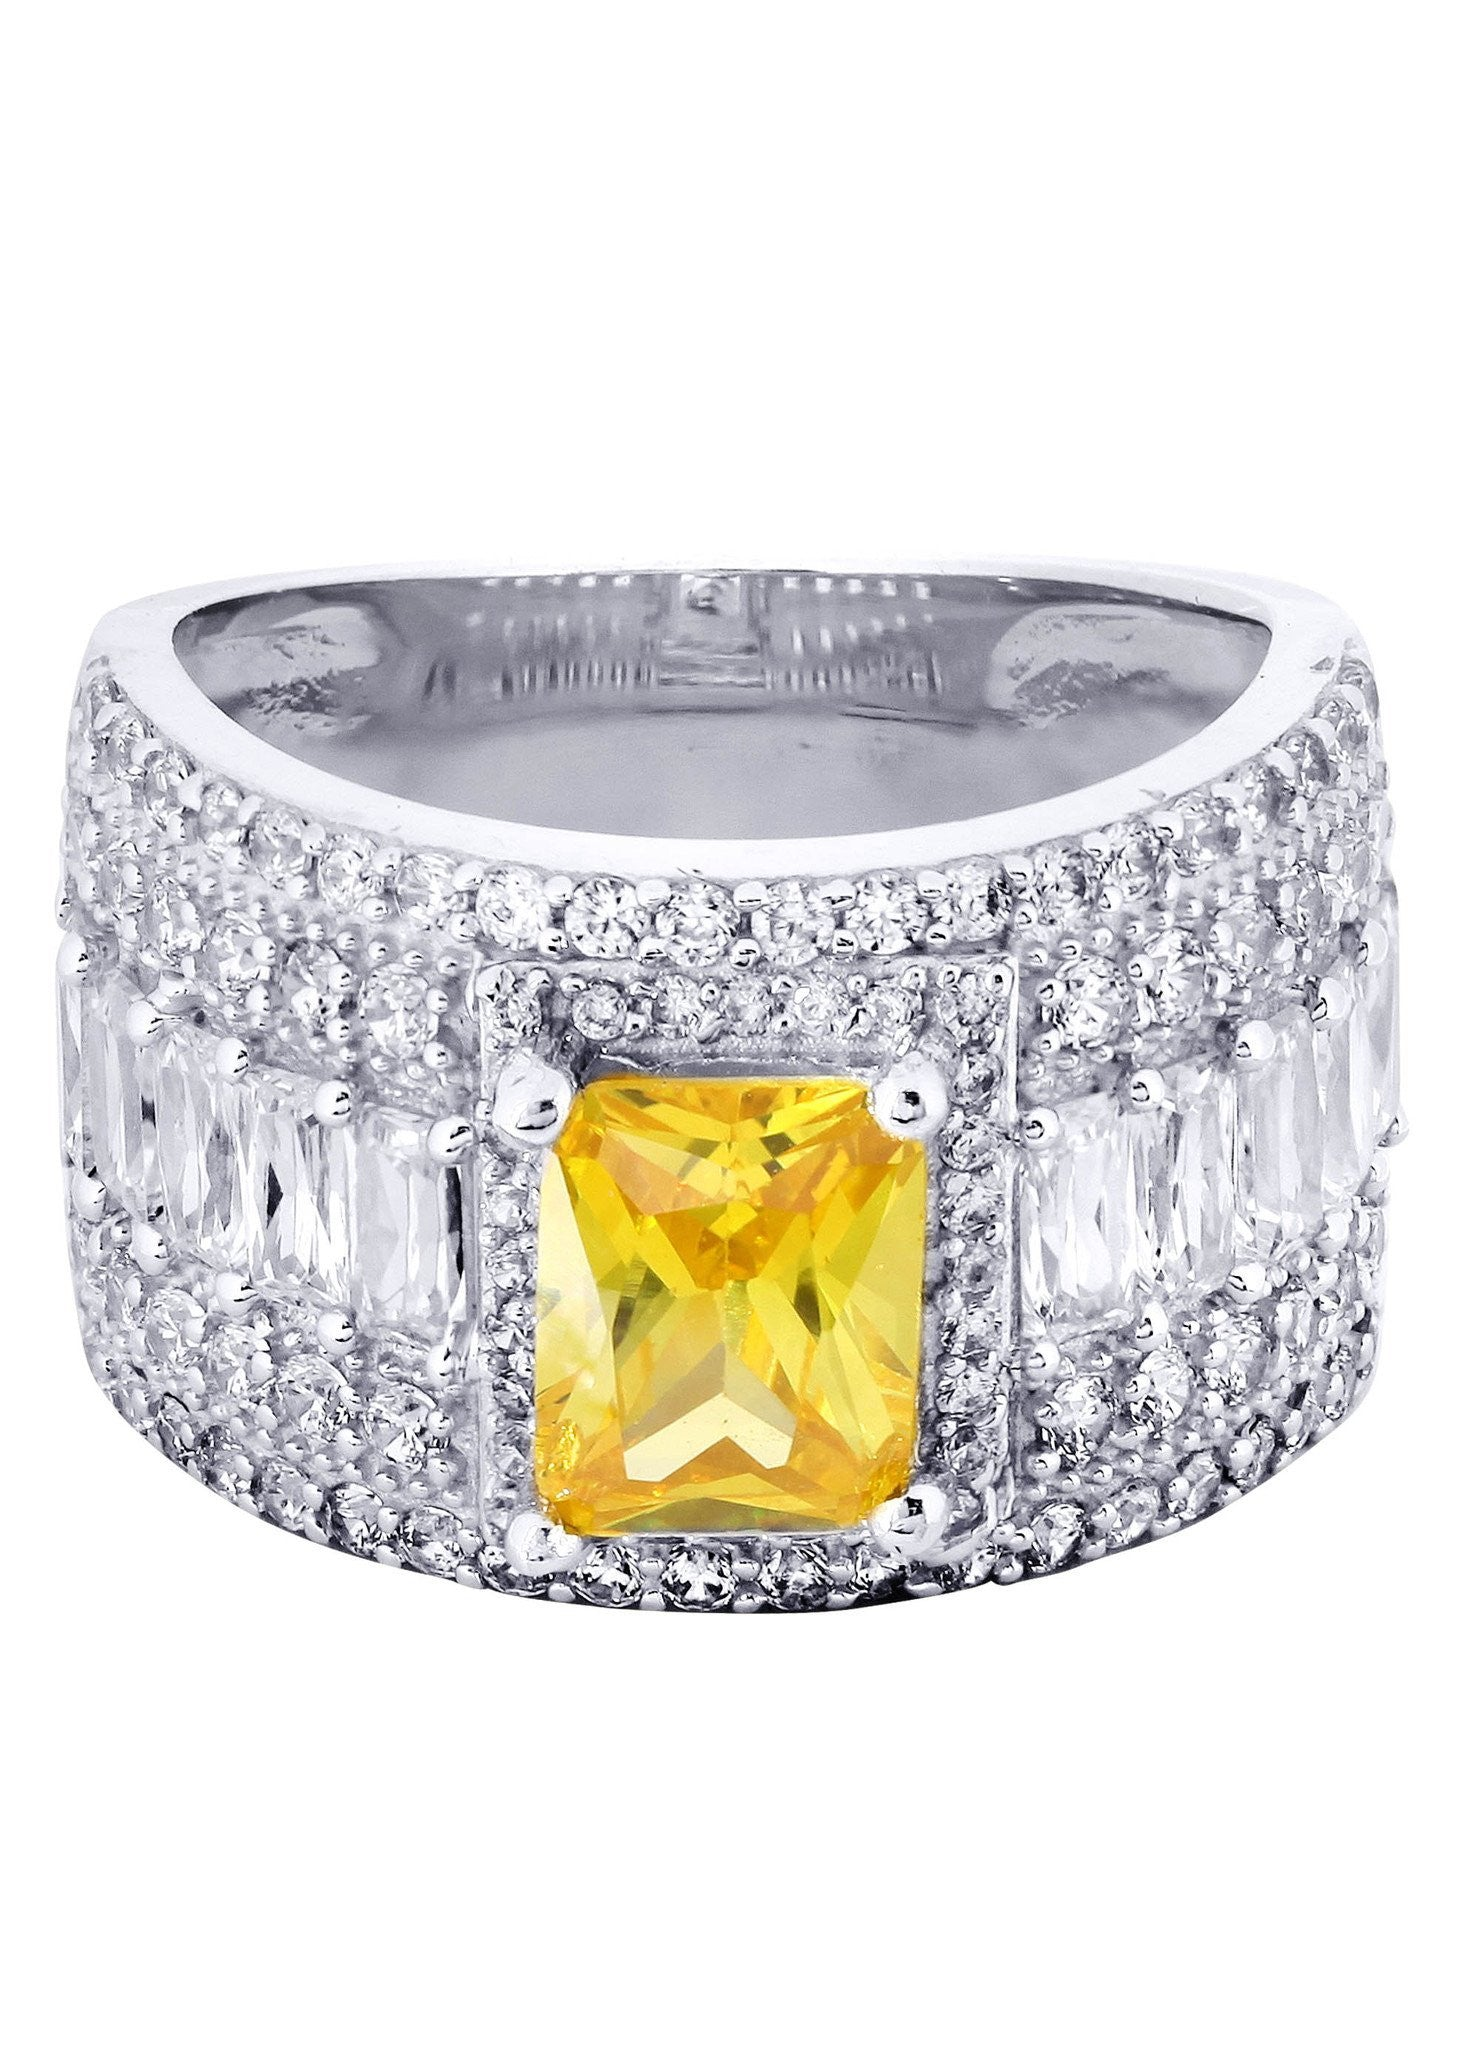 citrine promise ring 10k gold 8 grams frostnyc